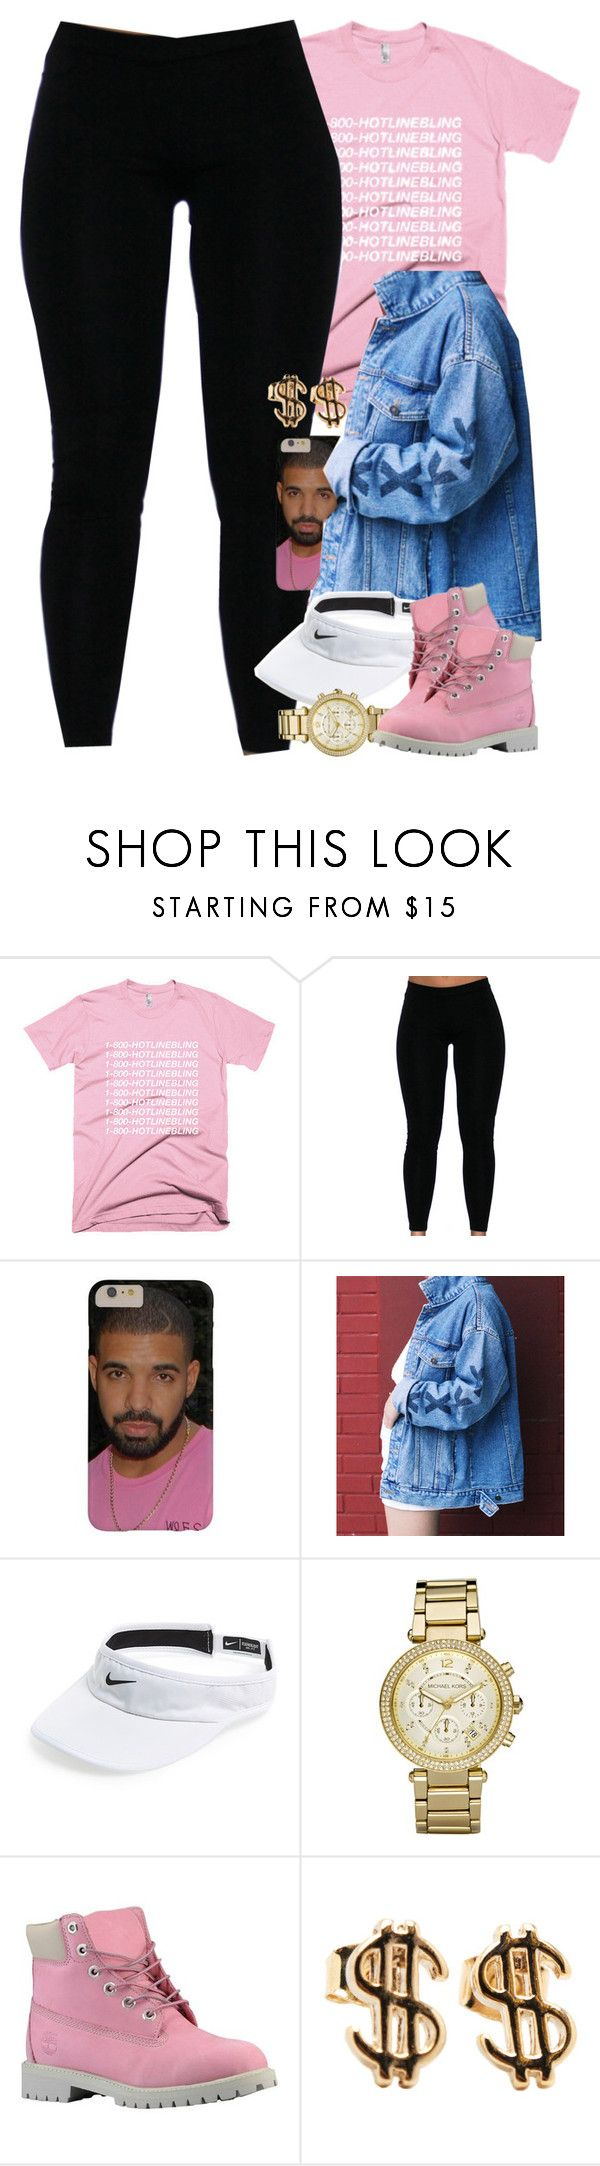 """""""Untitled #1427"""" by power-beauty ❤ liked on Polyvore featuring мода, NIKE, Michael Kors и Timberland"""